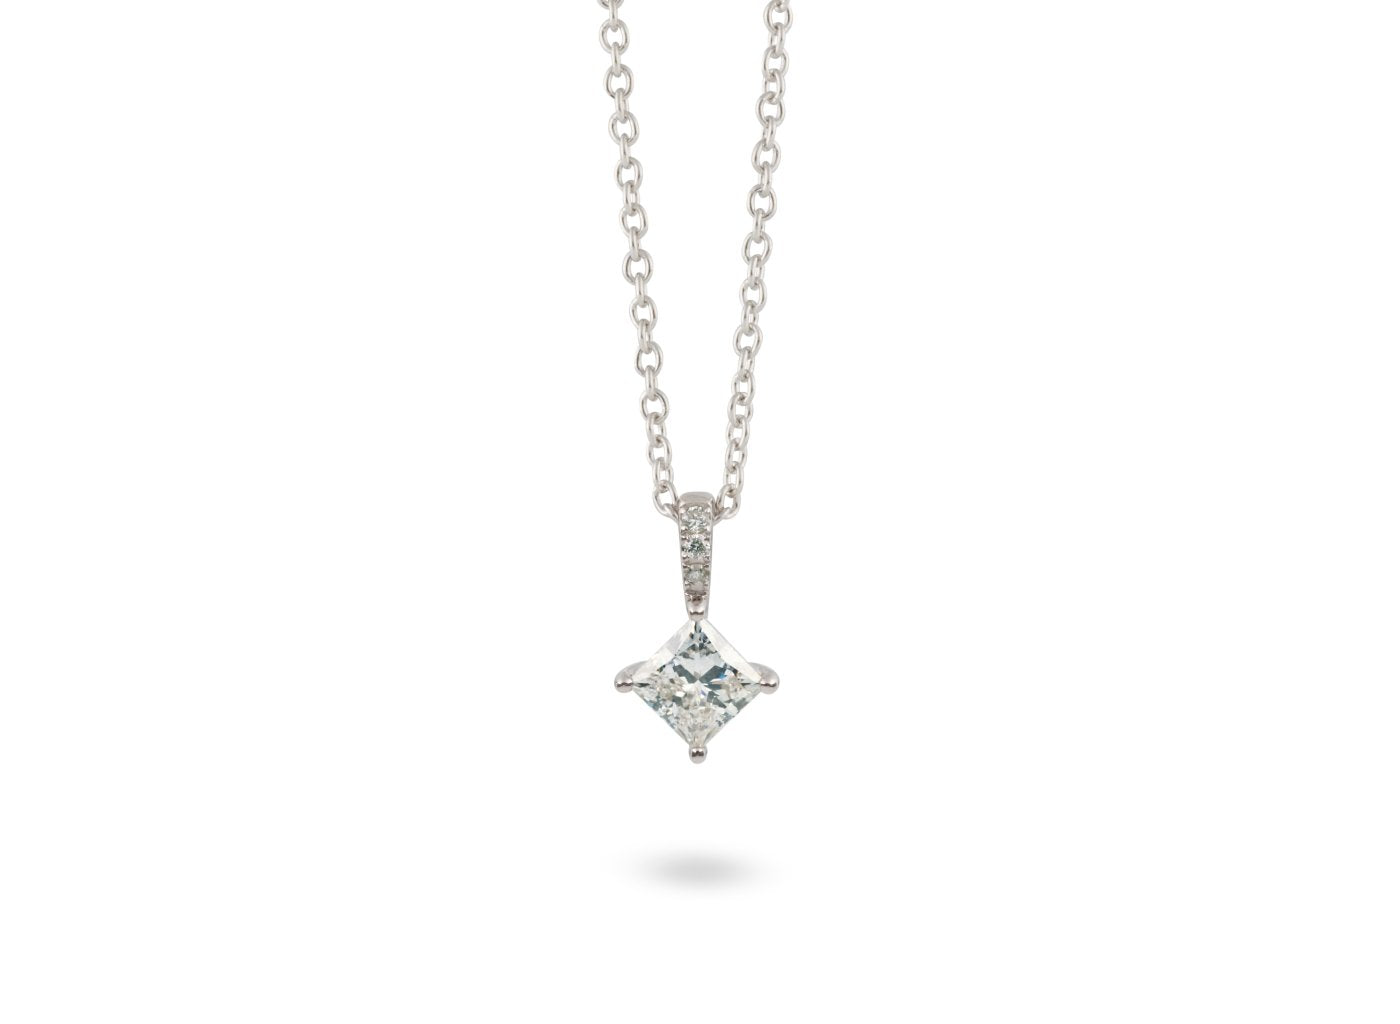 Front view of Princess Pavé 1/2 carat pendant with white diamonds